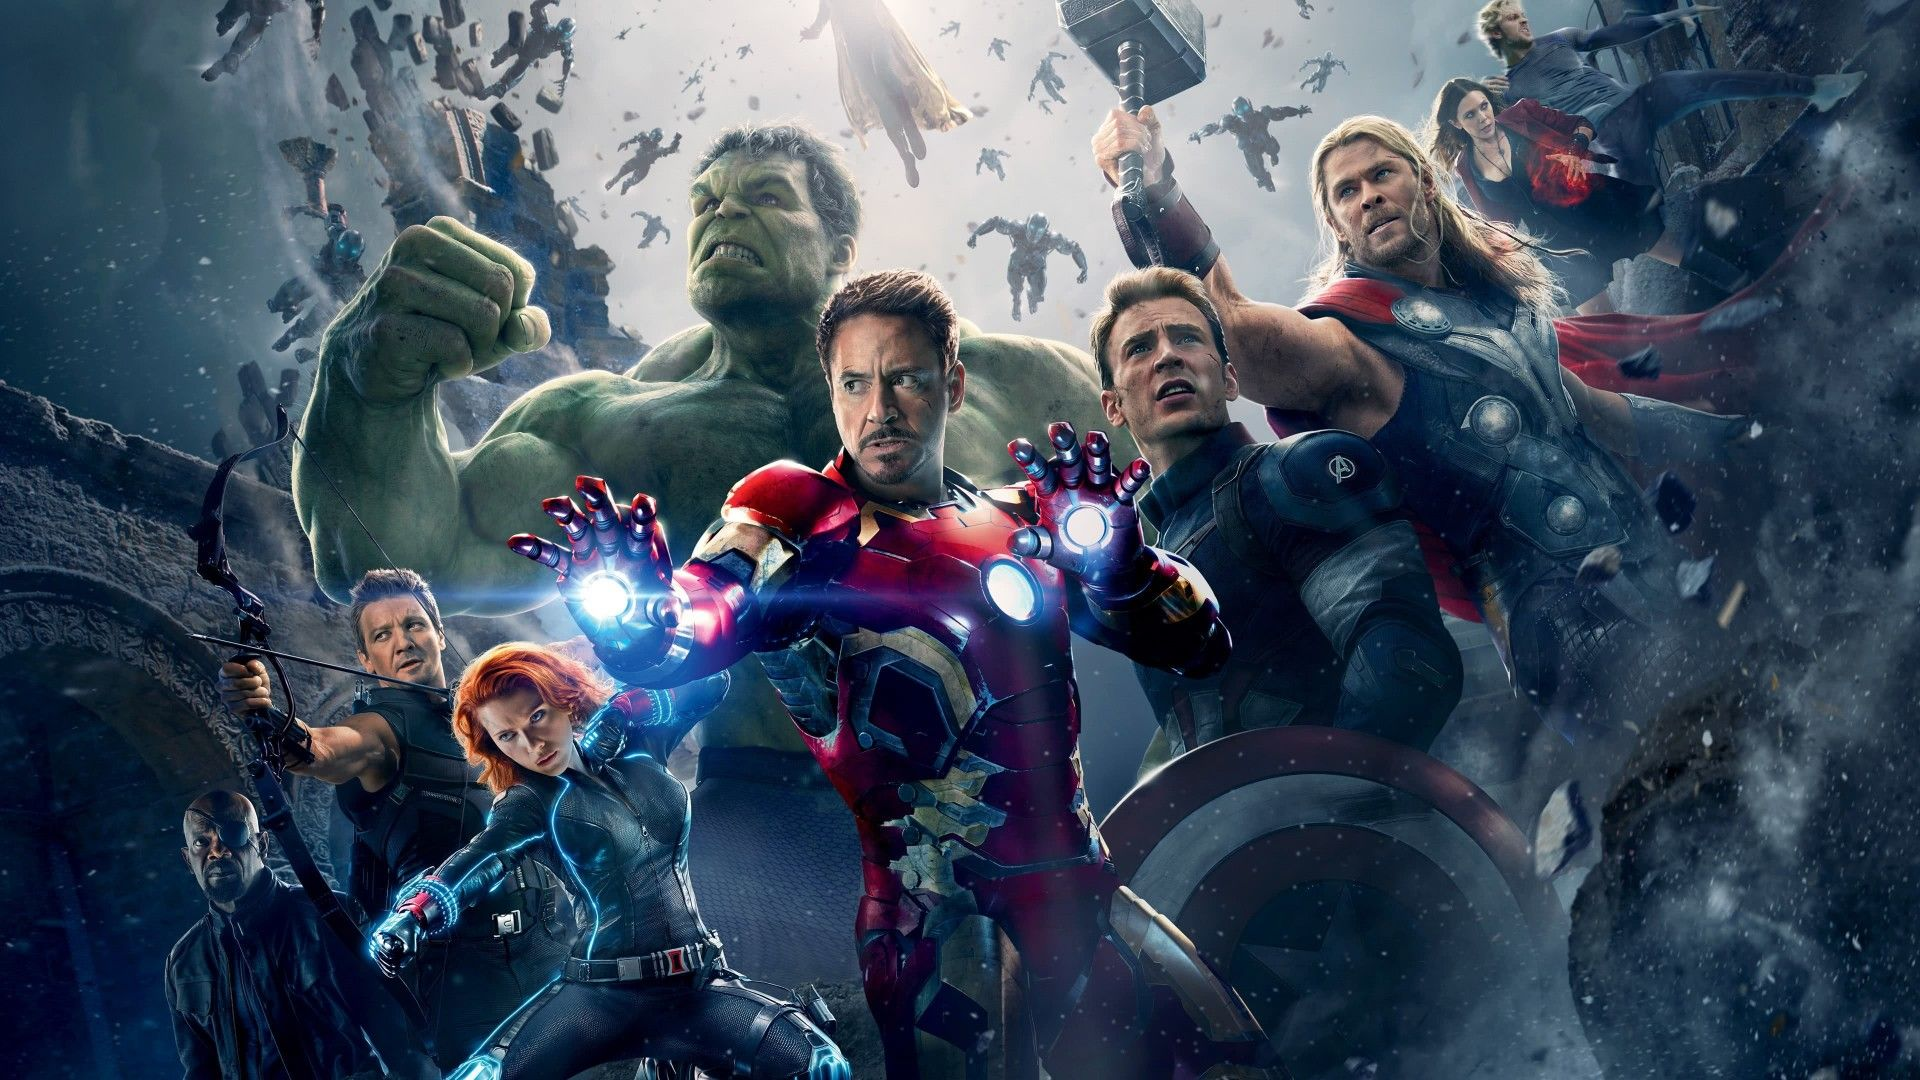 Avengers Endgame Hd Wallpapers For Smartphones Laptops And Pc S